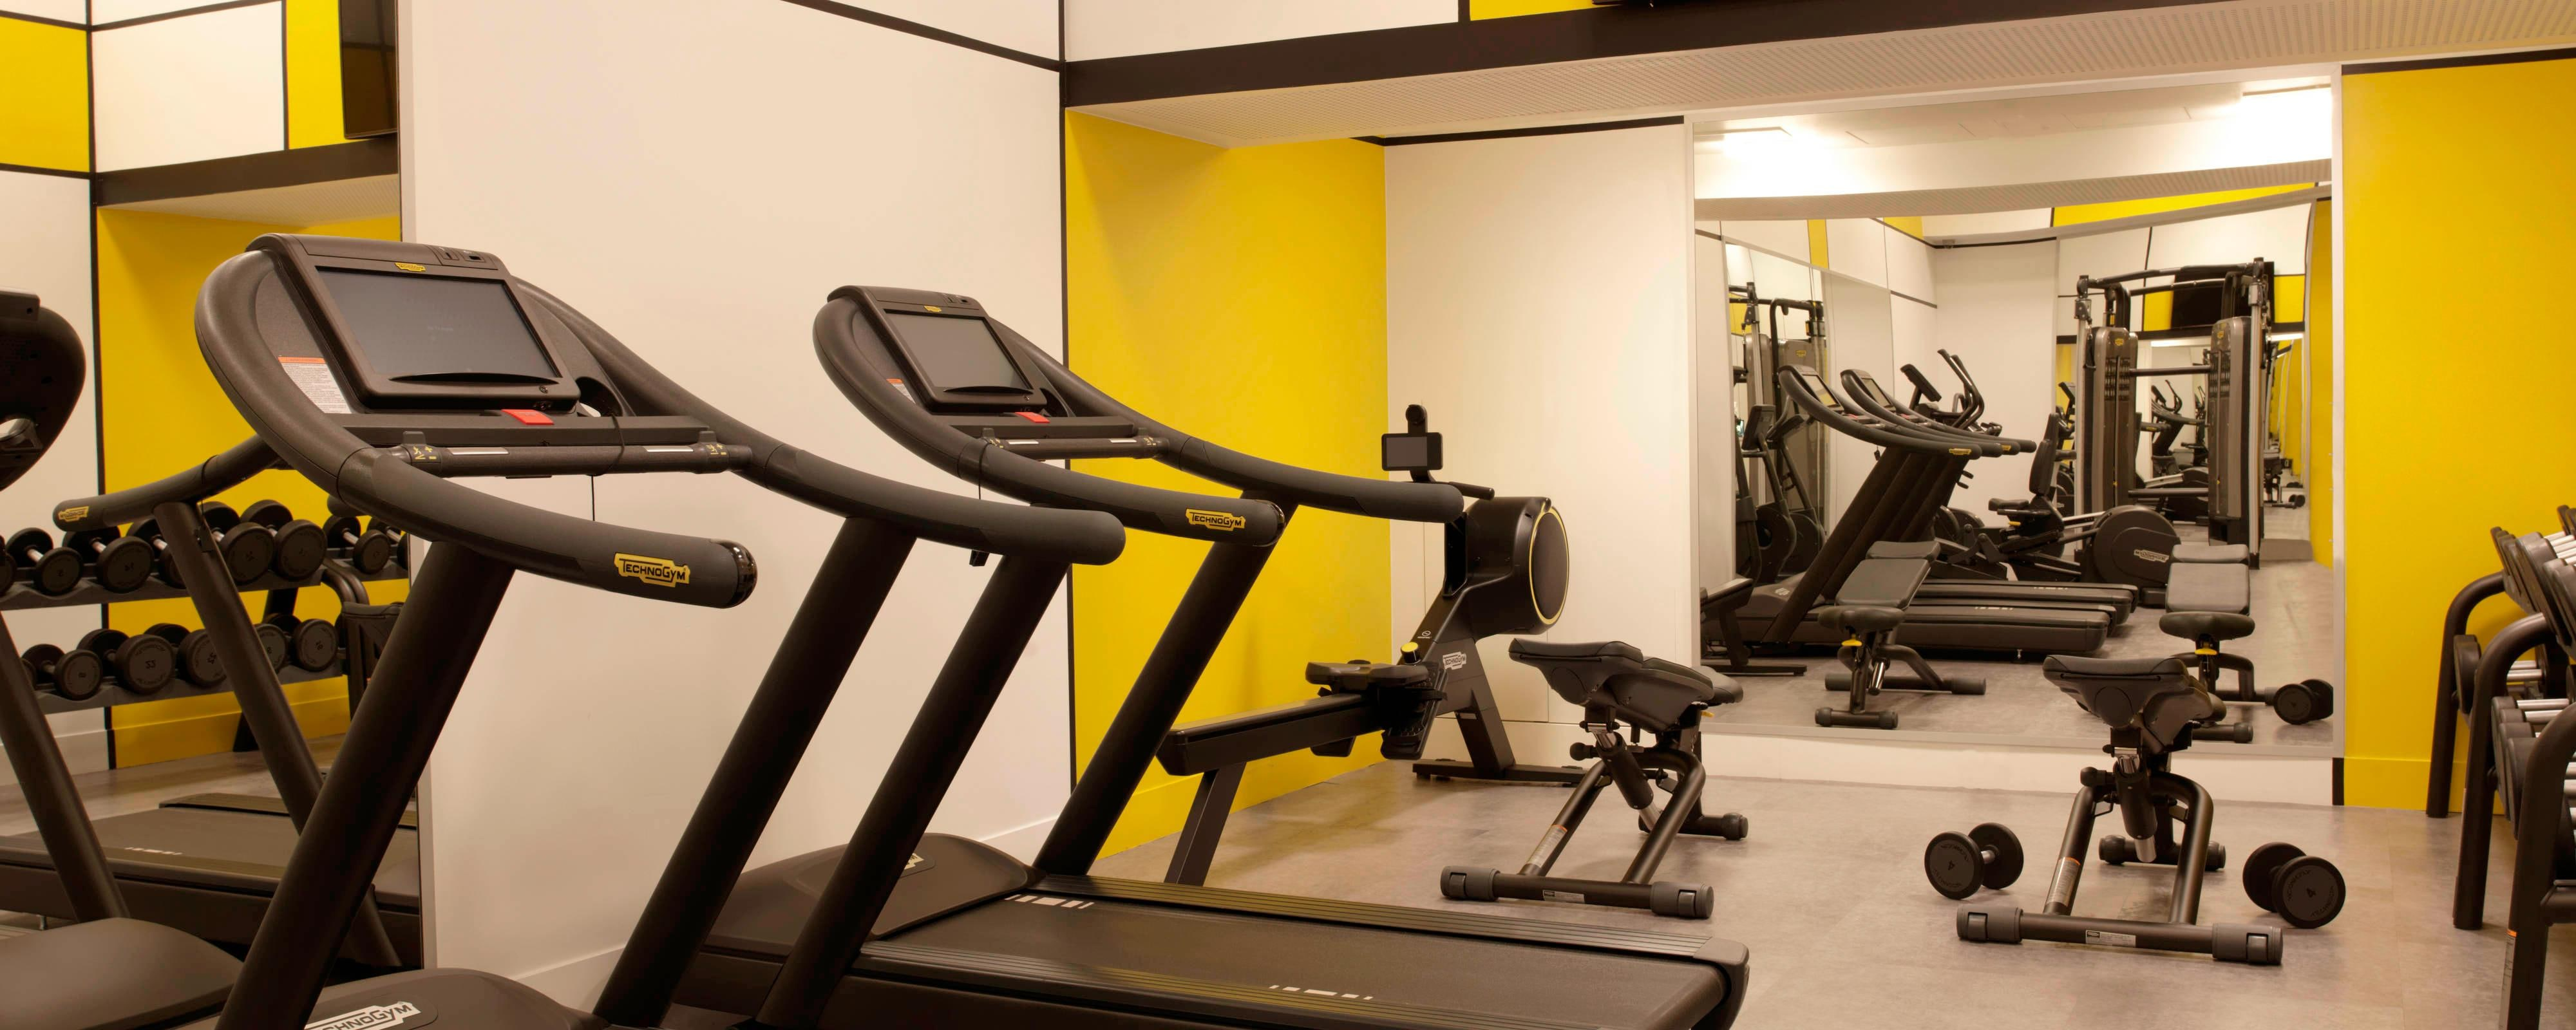 Hotel Mercure Paris Lyon hotel gym & recreation | courtyard paris gare de lyon